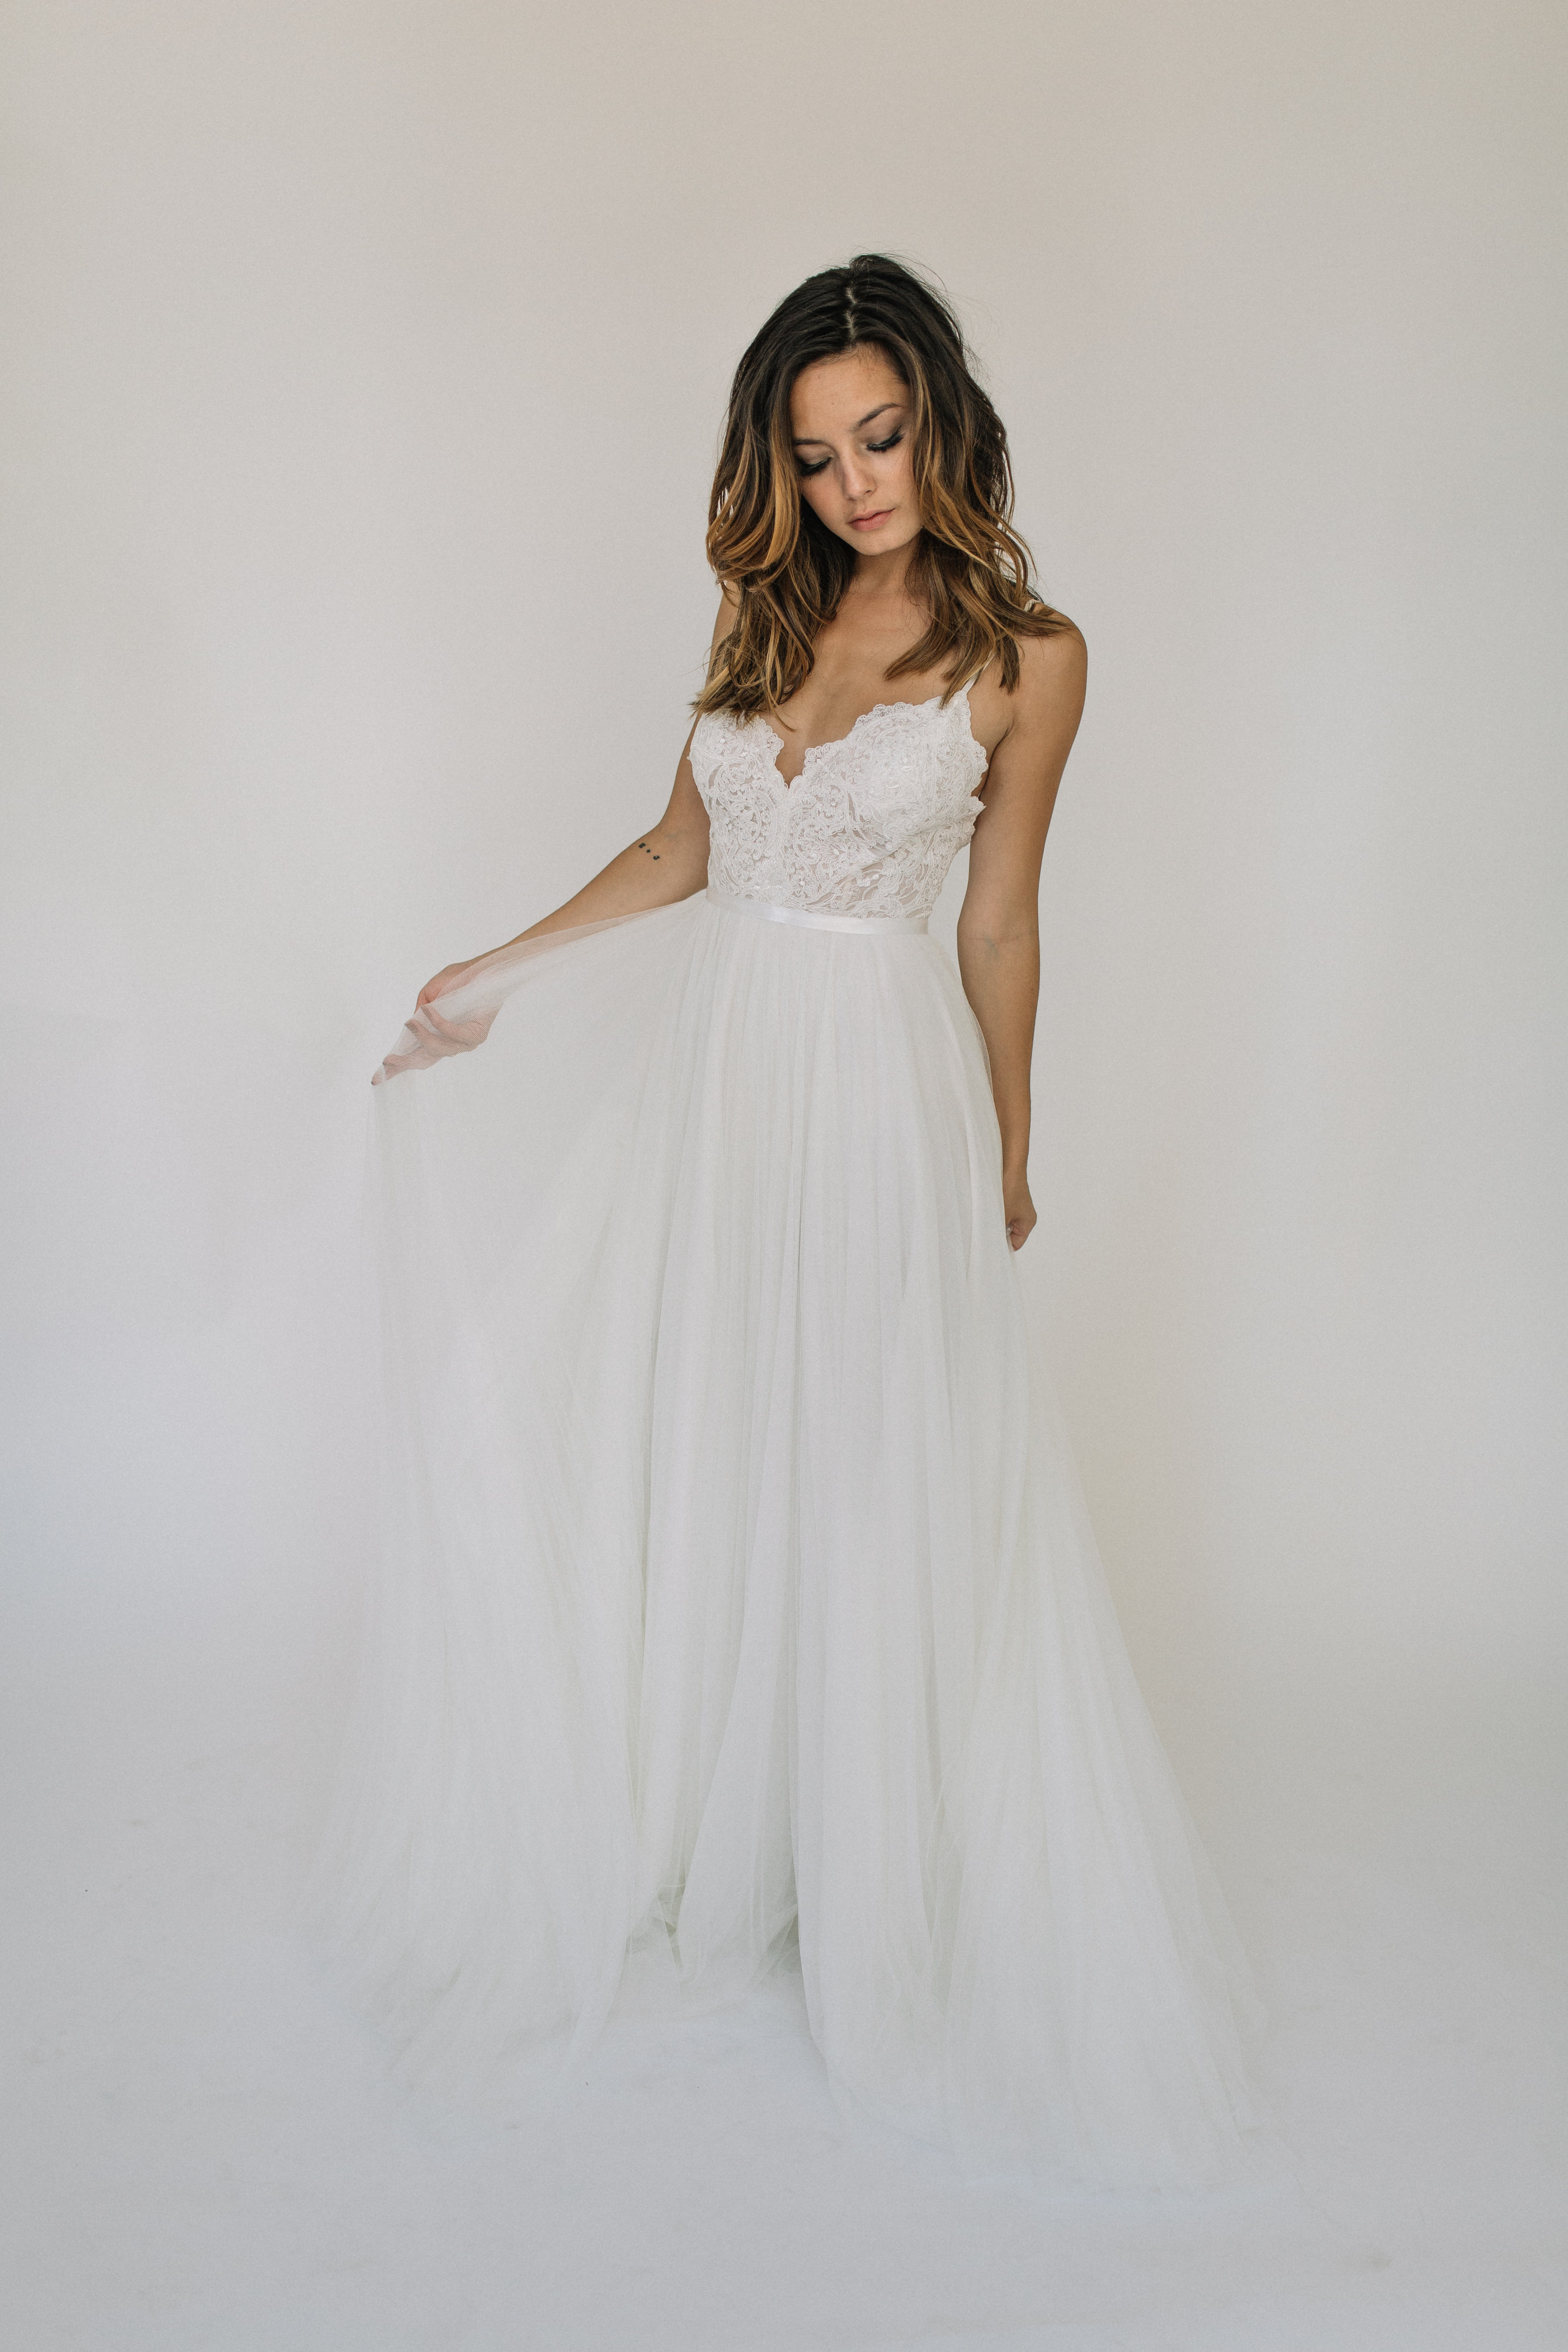 how to choose the perfect wedding dress the perfect wedding dress How to Choose the Perfect Wedding Dress